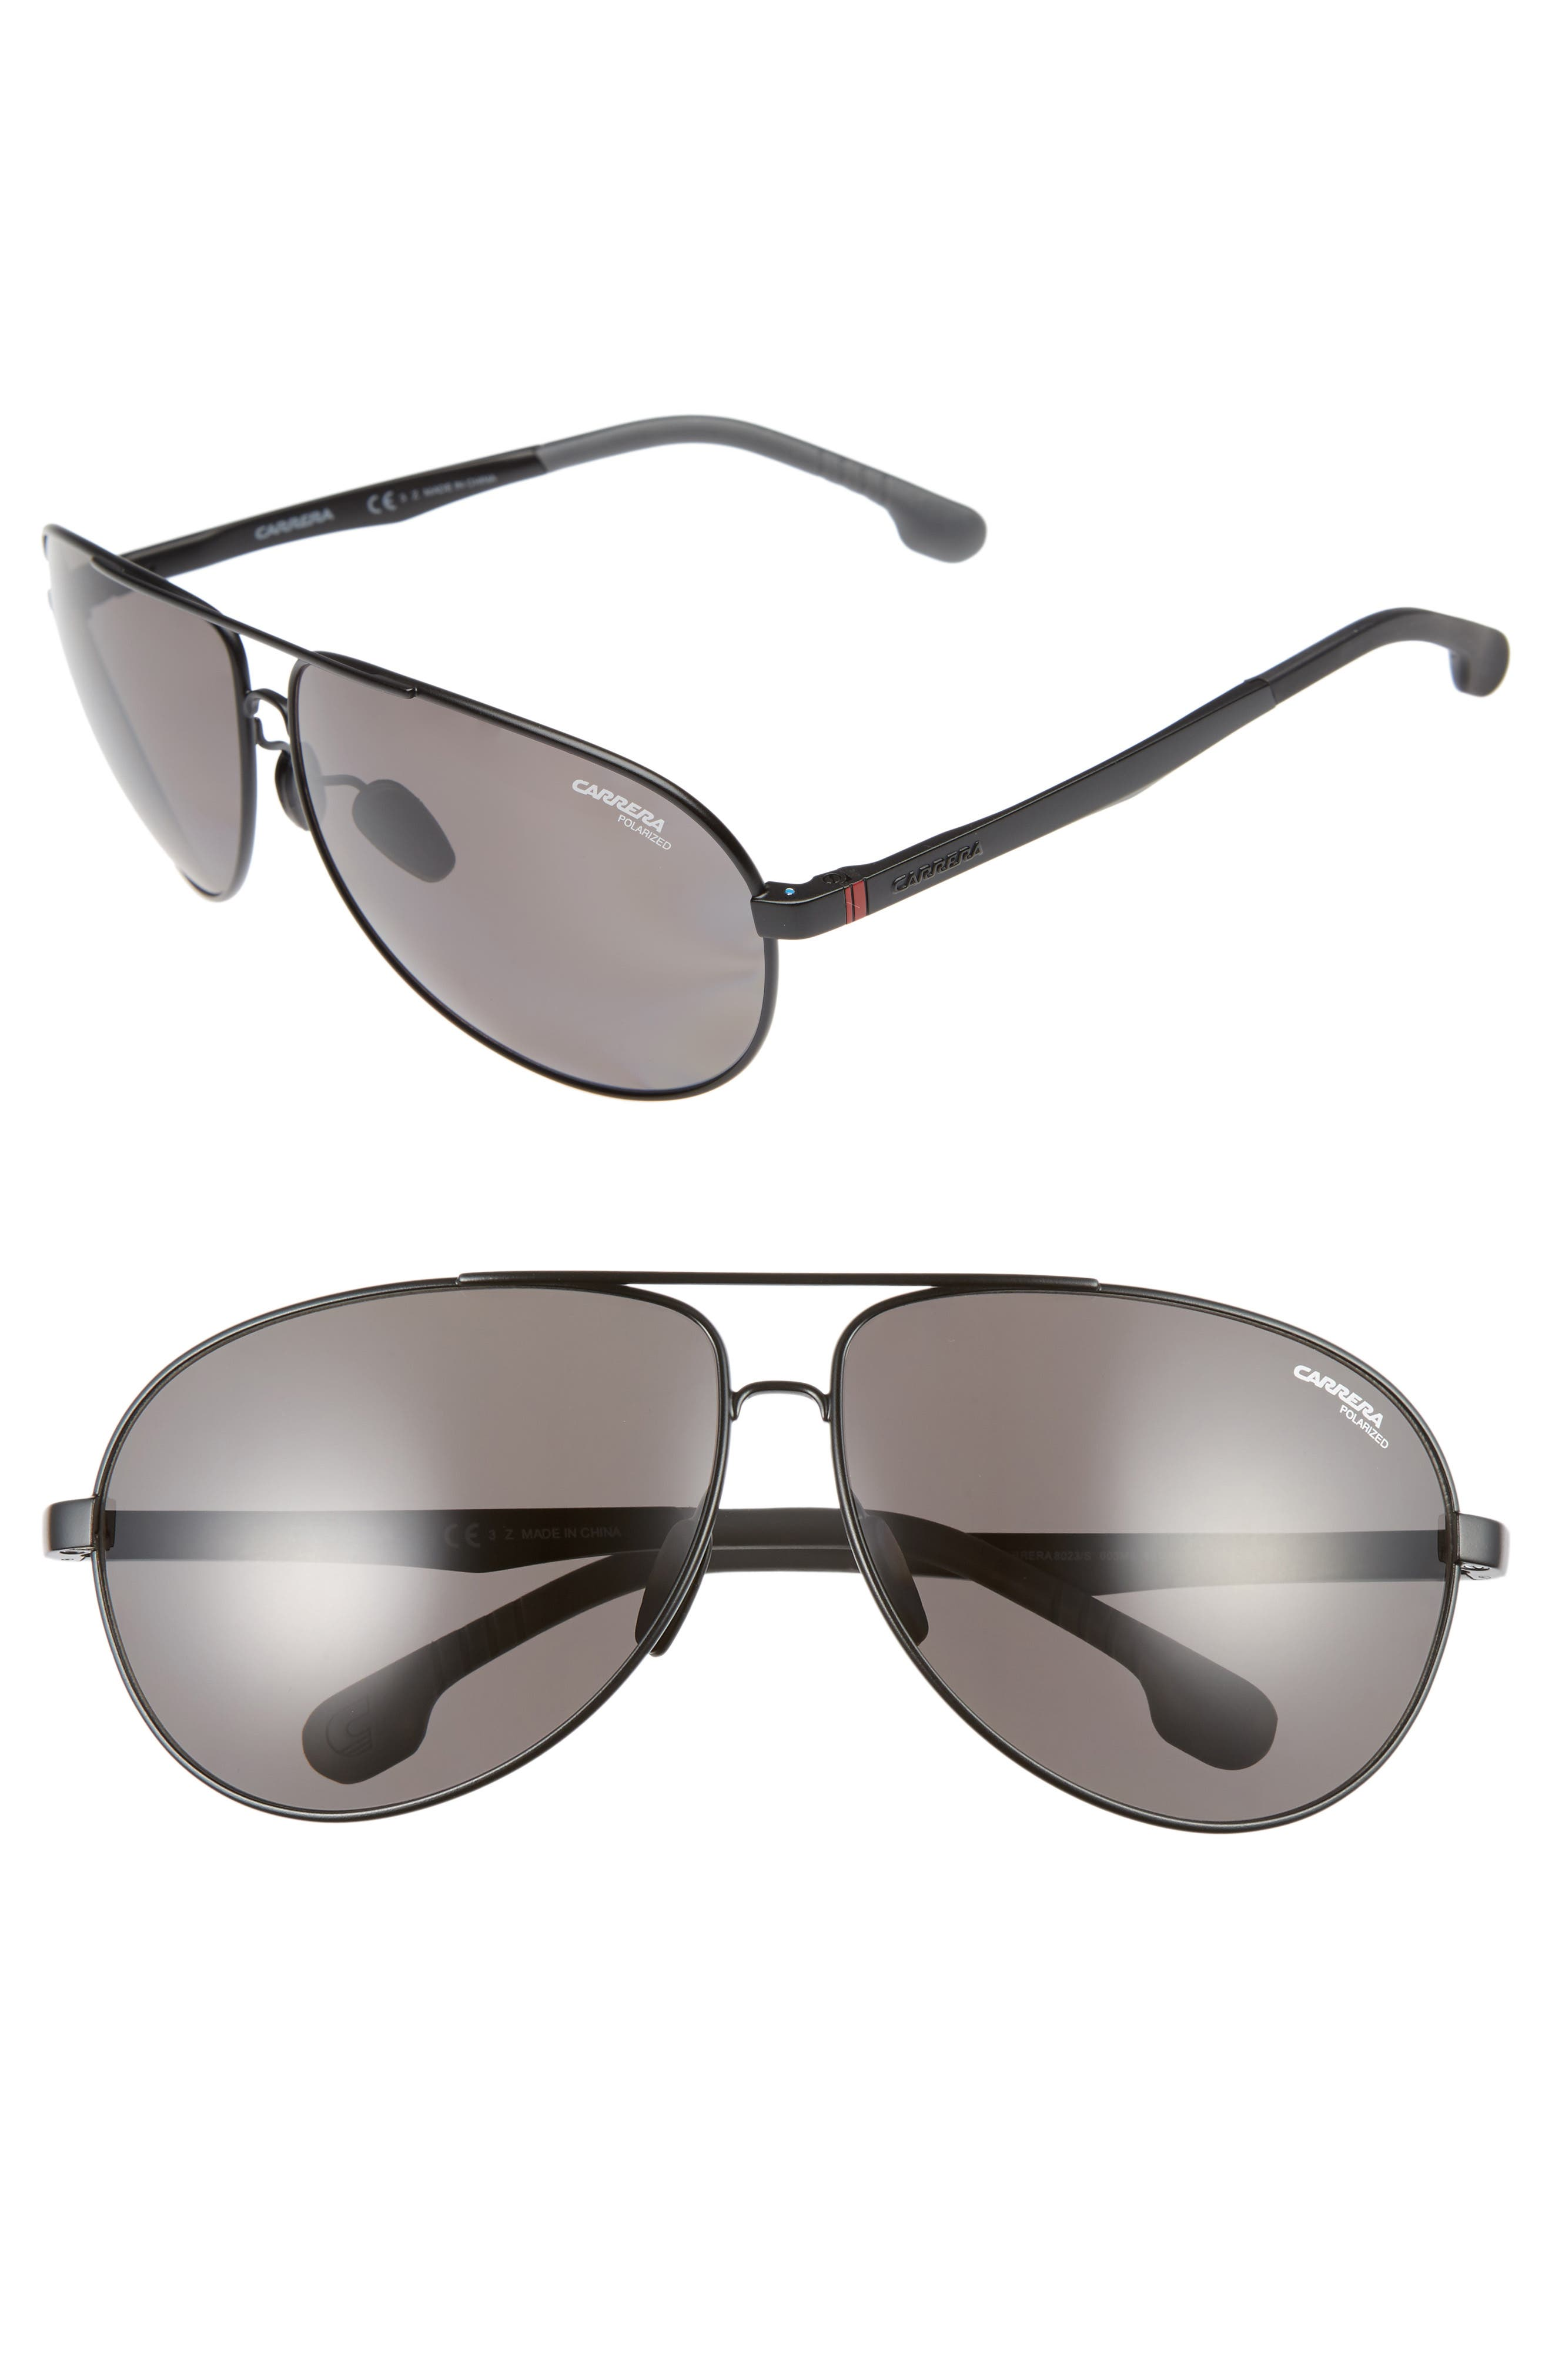 Carrera Eyewear 6m Polarized Sunglasses - Matte Black/ Grey